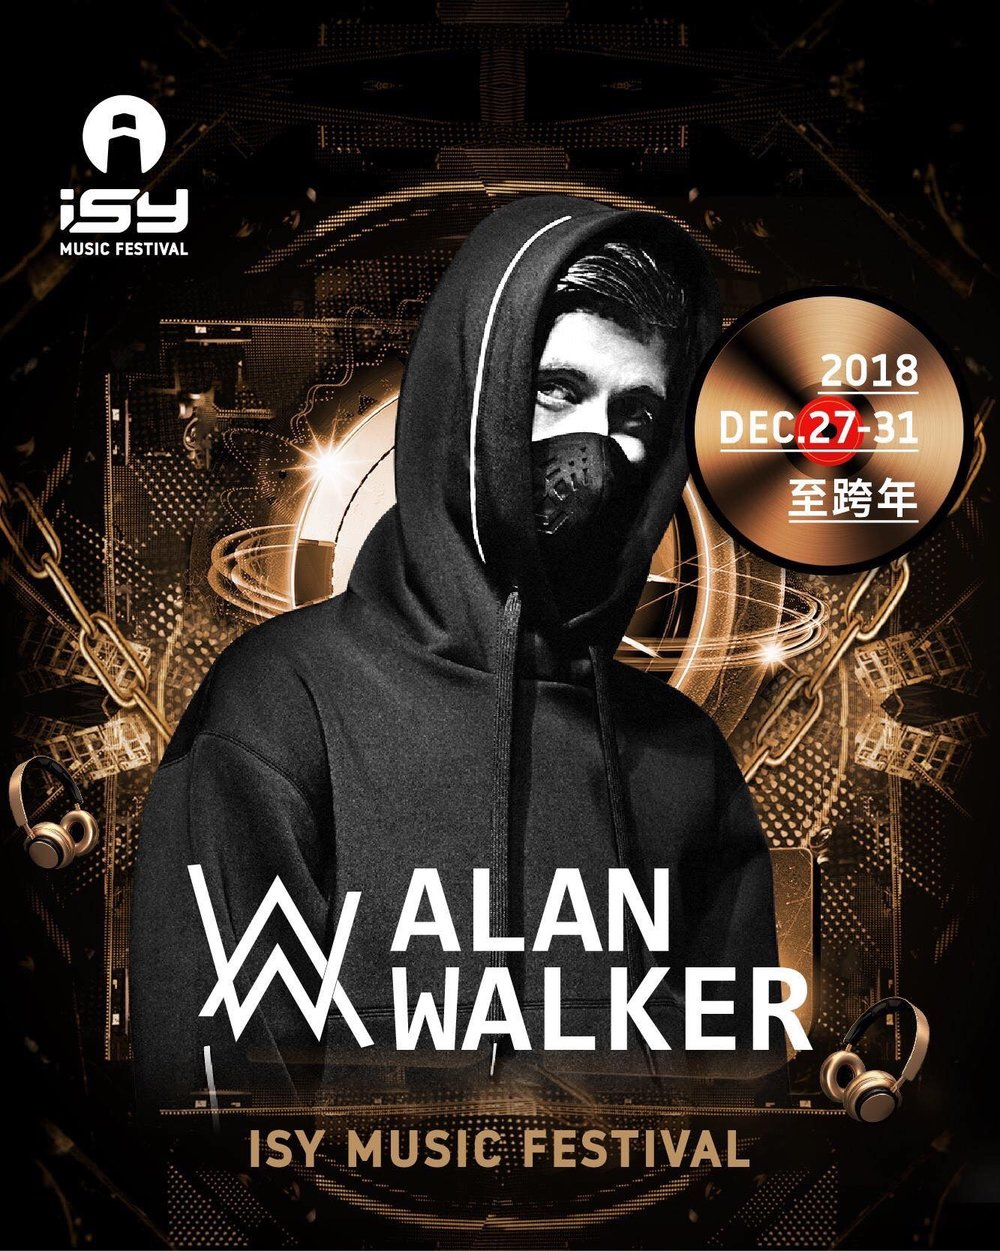 "Alan Walker - is a Norwegian DJ and record producer. He is best known for his 2015 single ""Faded"", which received platinum certifications in over 10 countries. He was ranked 36th on DJ Mag's Top DJs list of 2018"